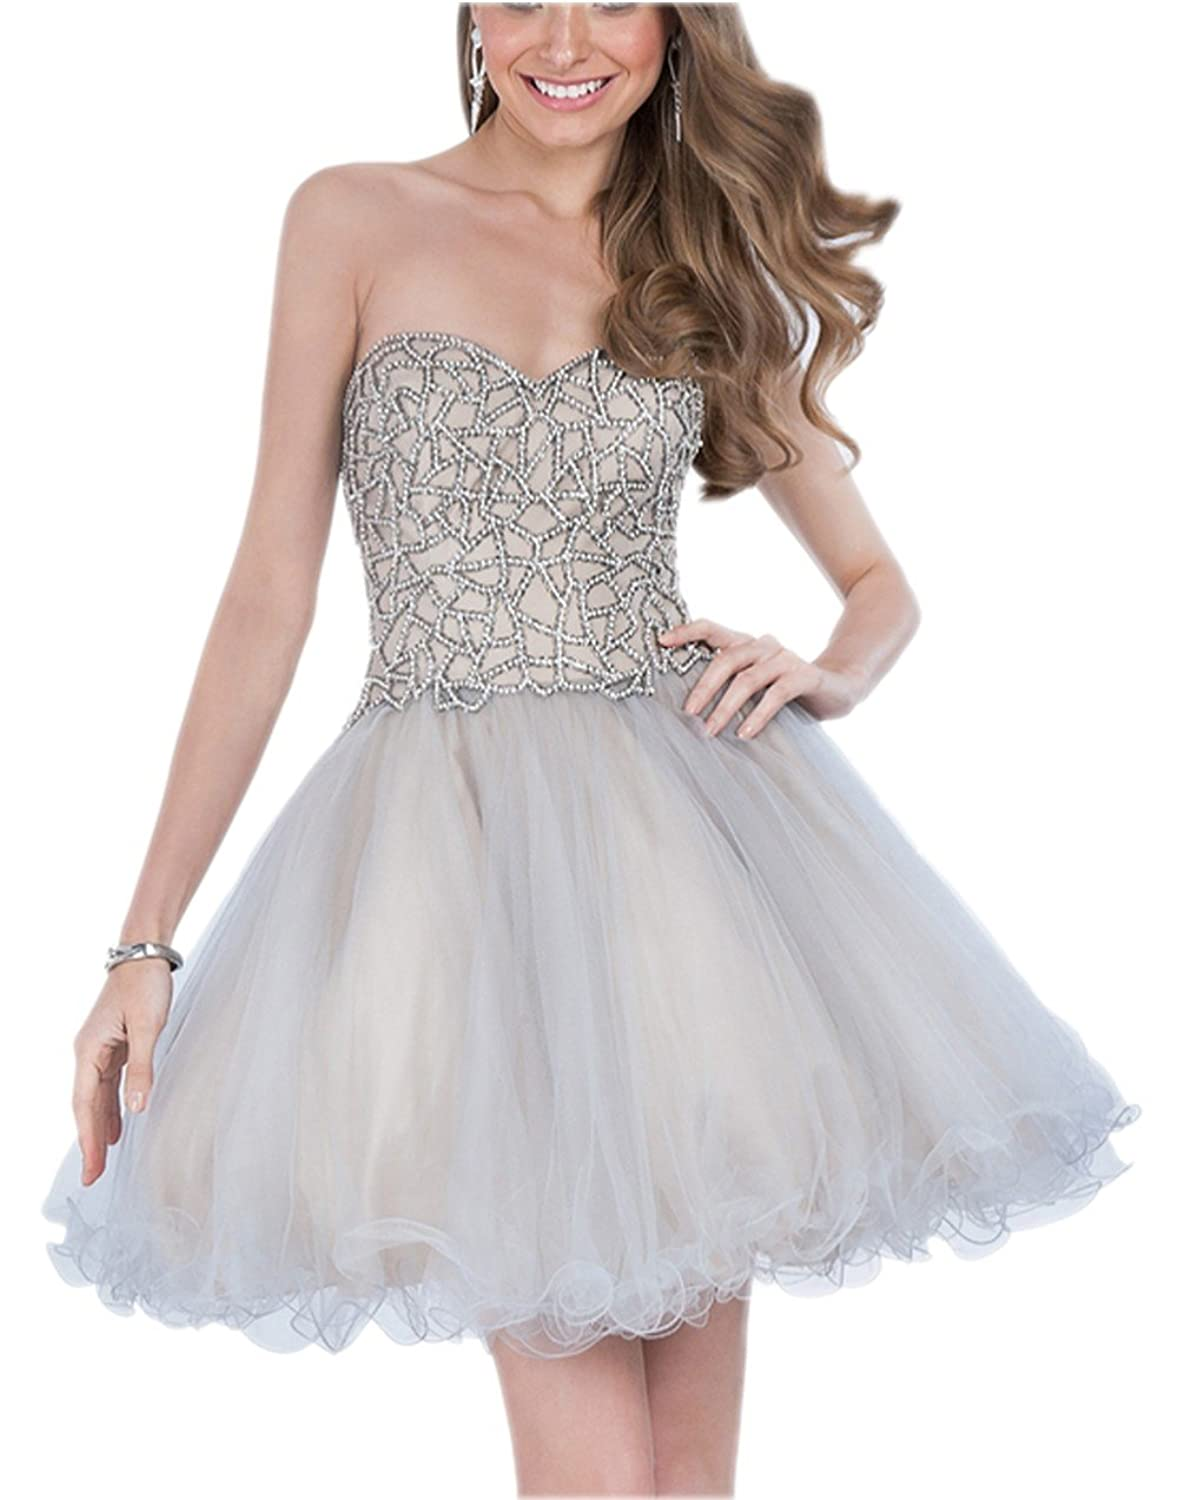 Beading Bodice Girl's Homecoming Dresses Puffy Organza Party Ball Gowns